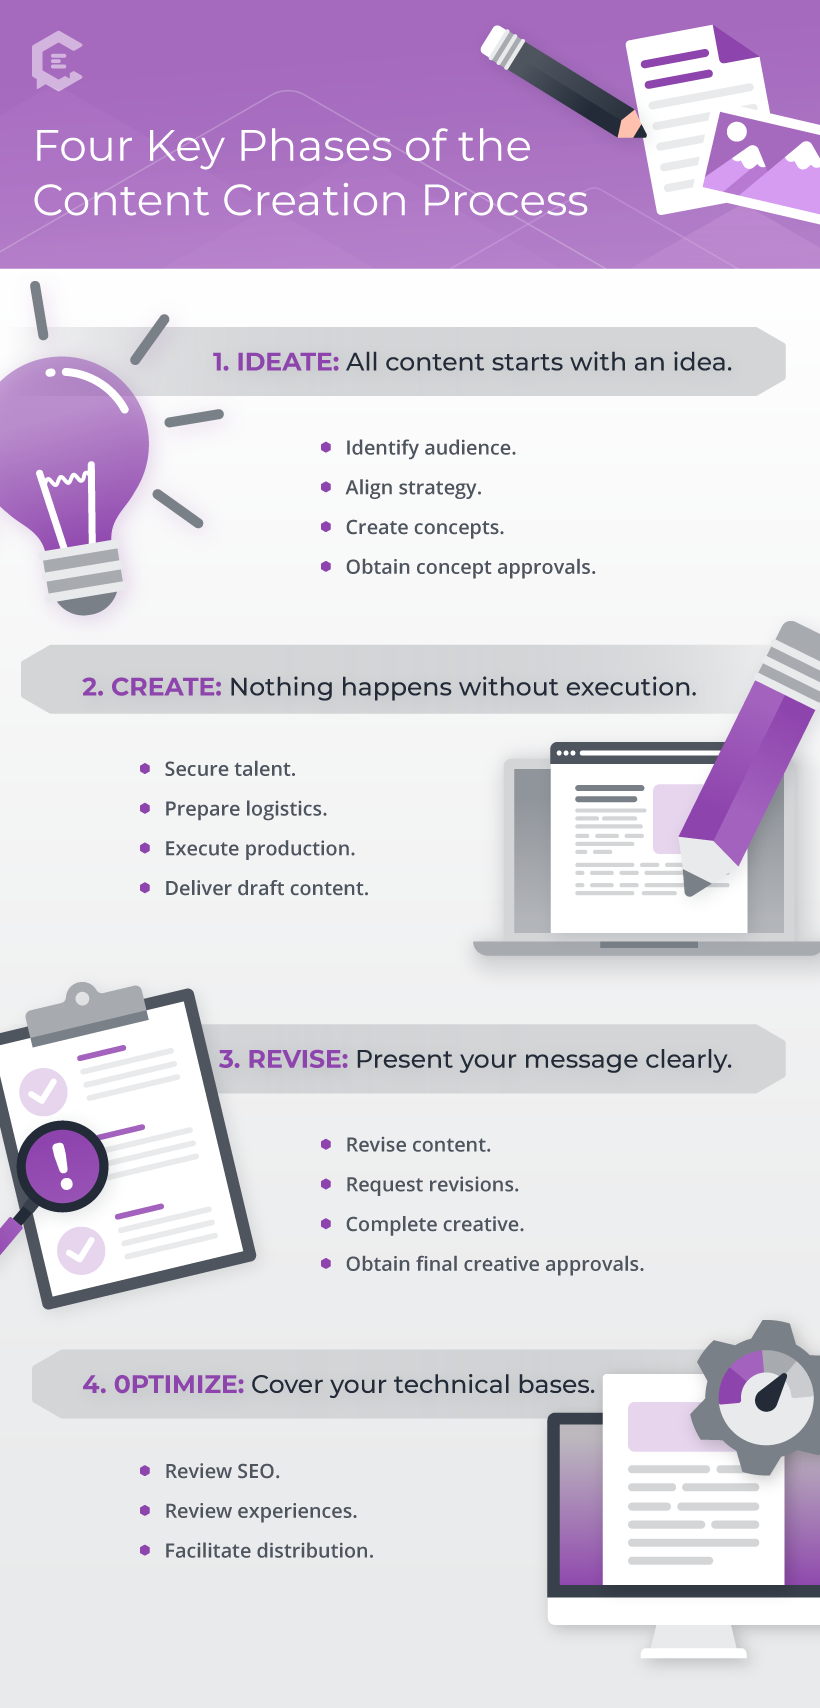 4 Key Phases of the Content Creation Process